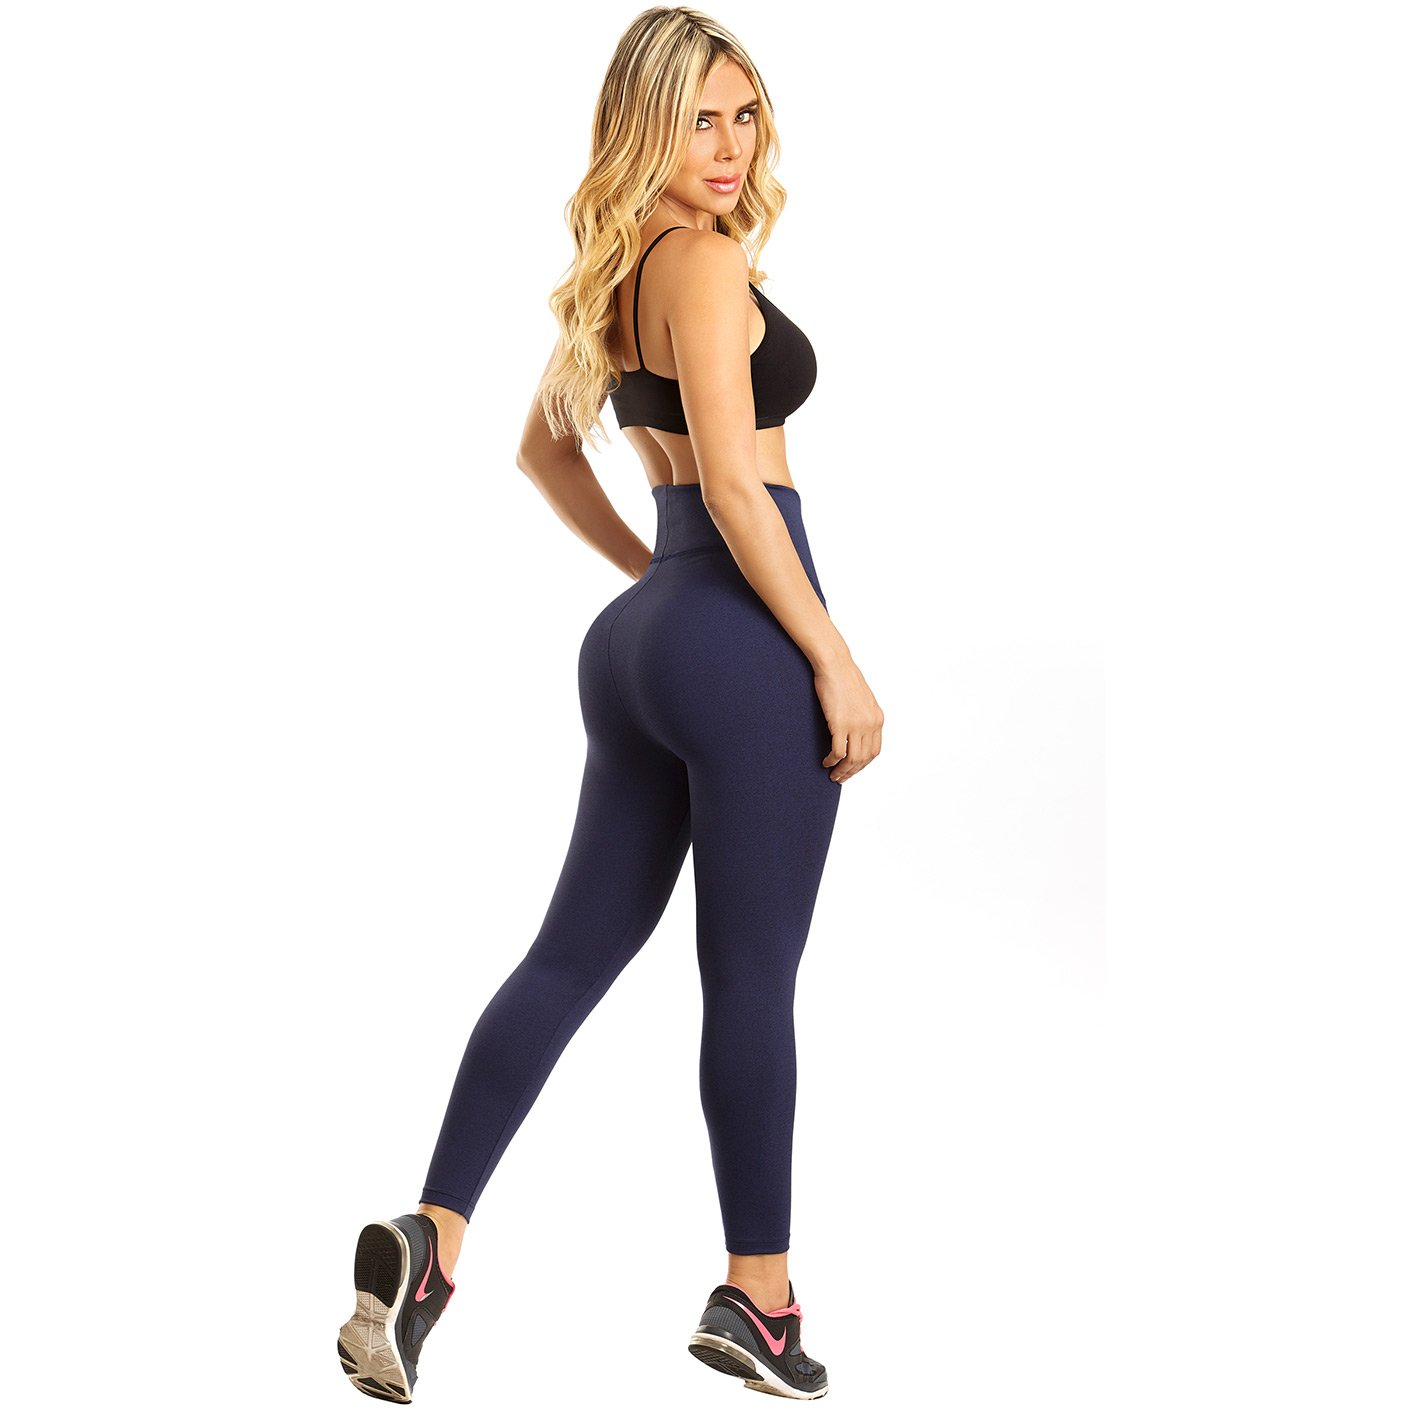 1f219bb8f8 LT.Rose 21840 High Waisted Workout Yoga Leggings Butt Lift Compression Pants  at Amazon Women s Clothing store